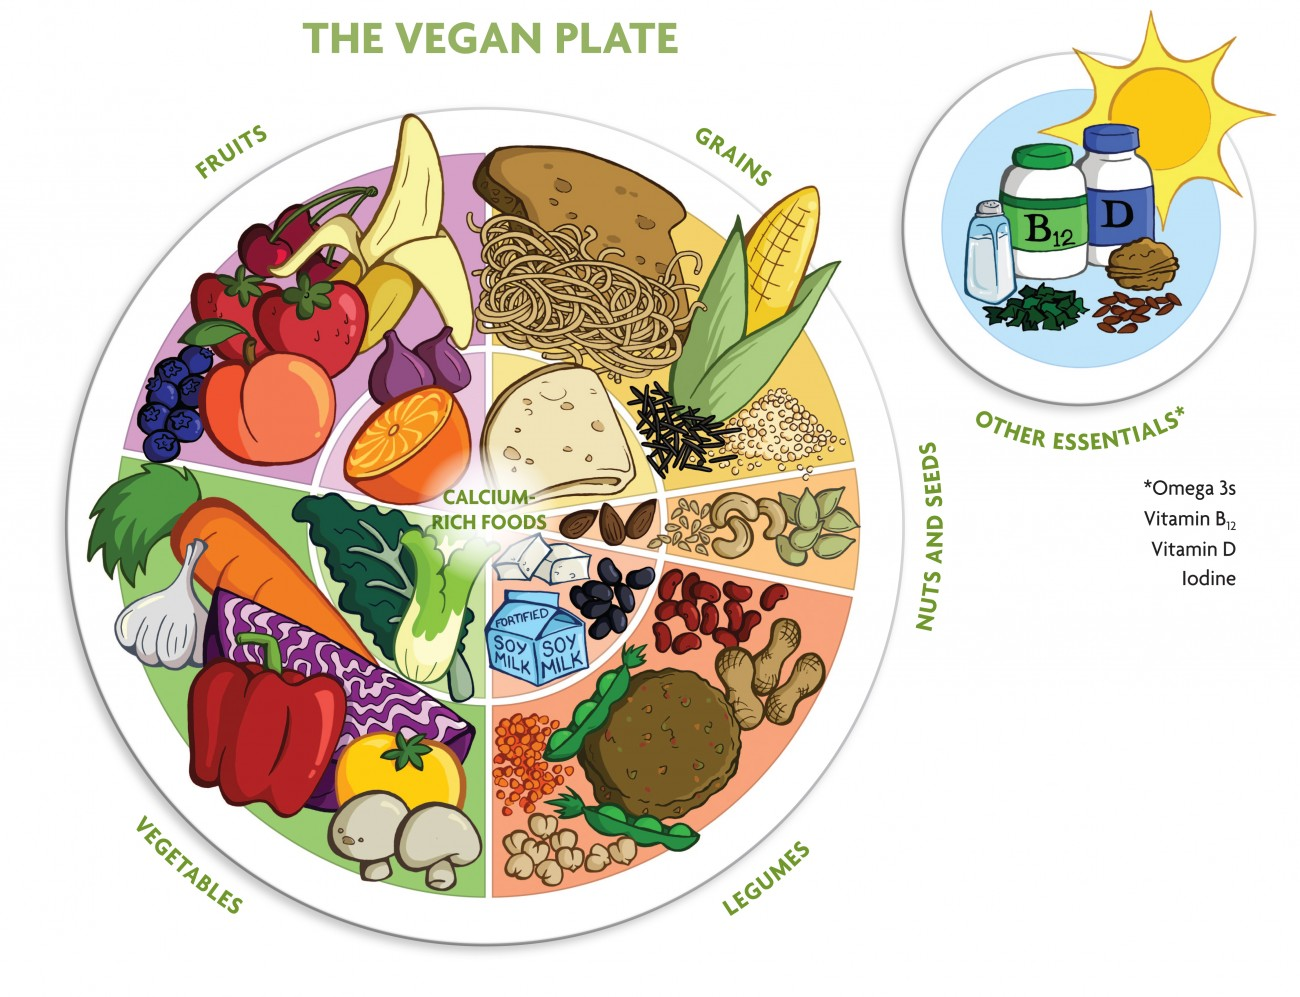 Vegan-Plate-art-BIG-hi-res-2.jpg